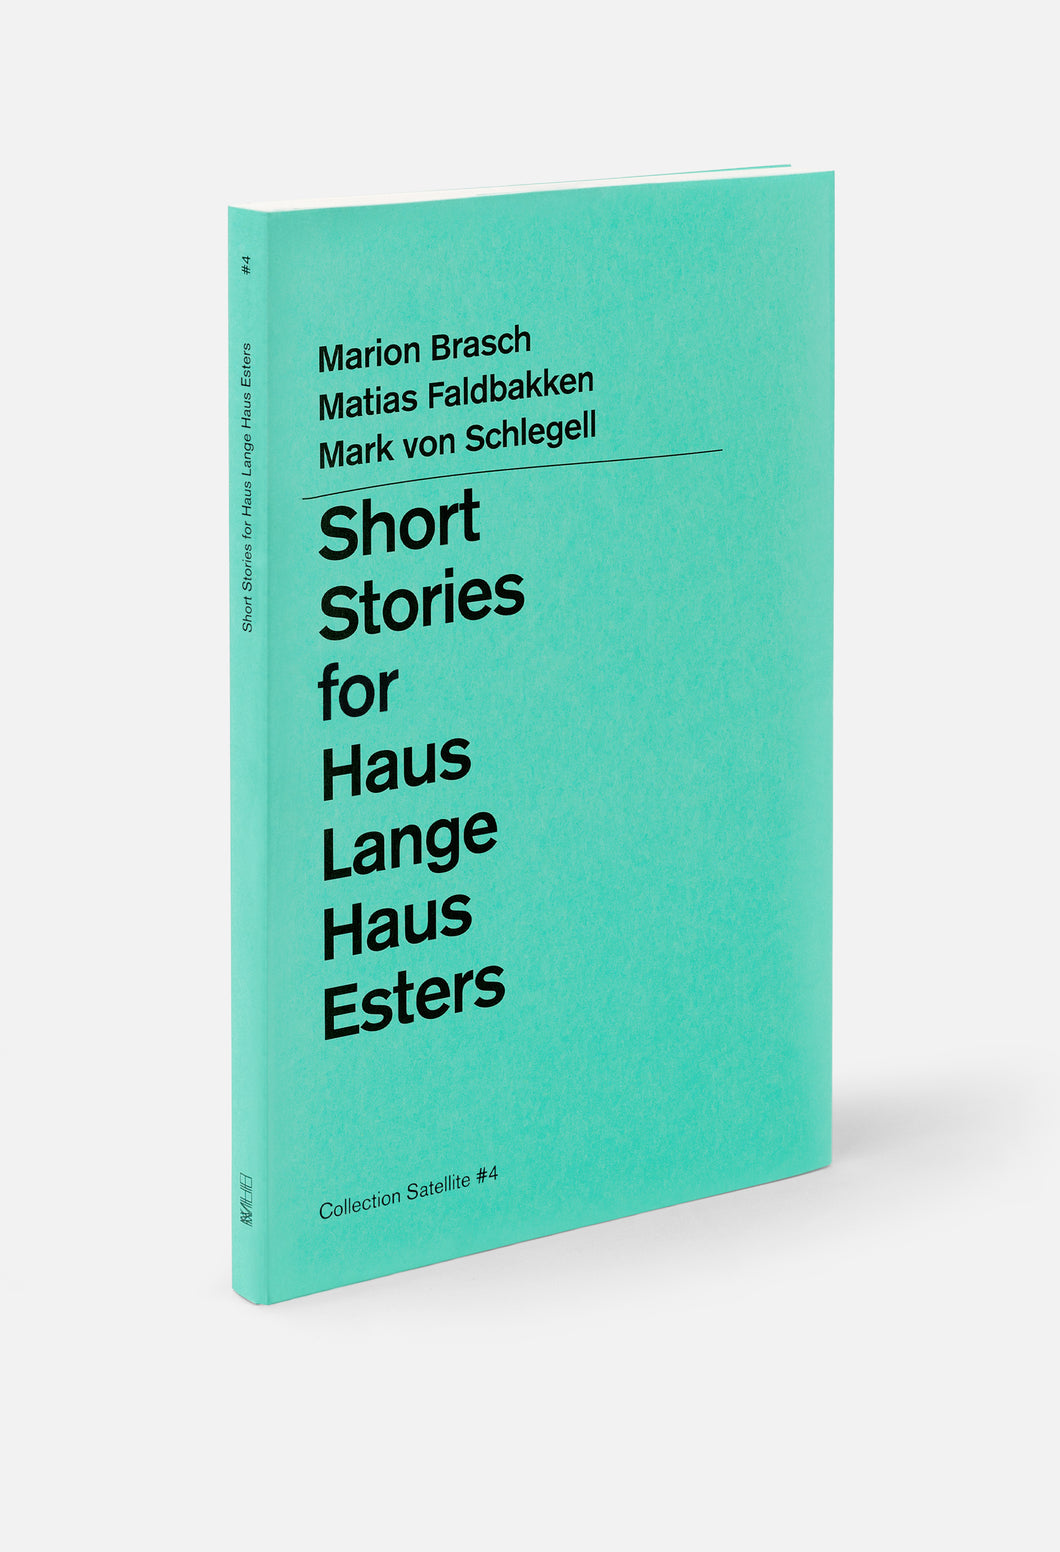 short stories für haus lange haus esters